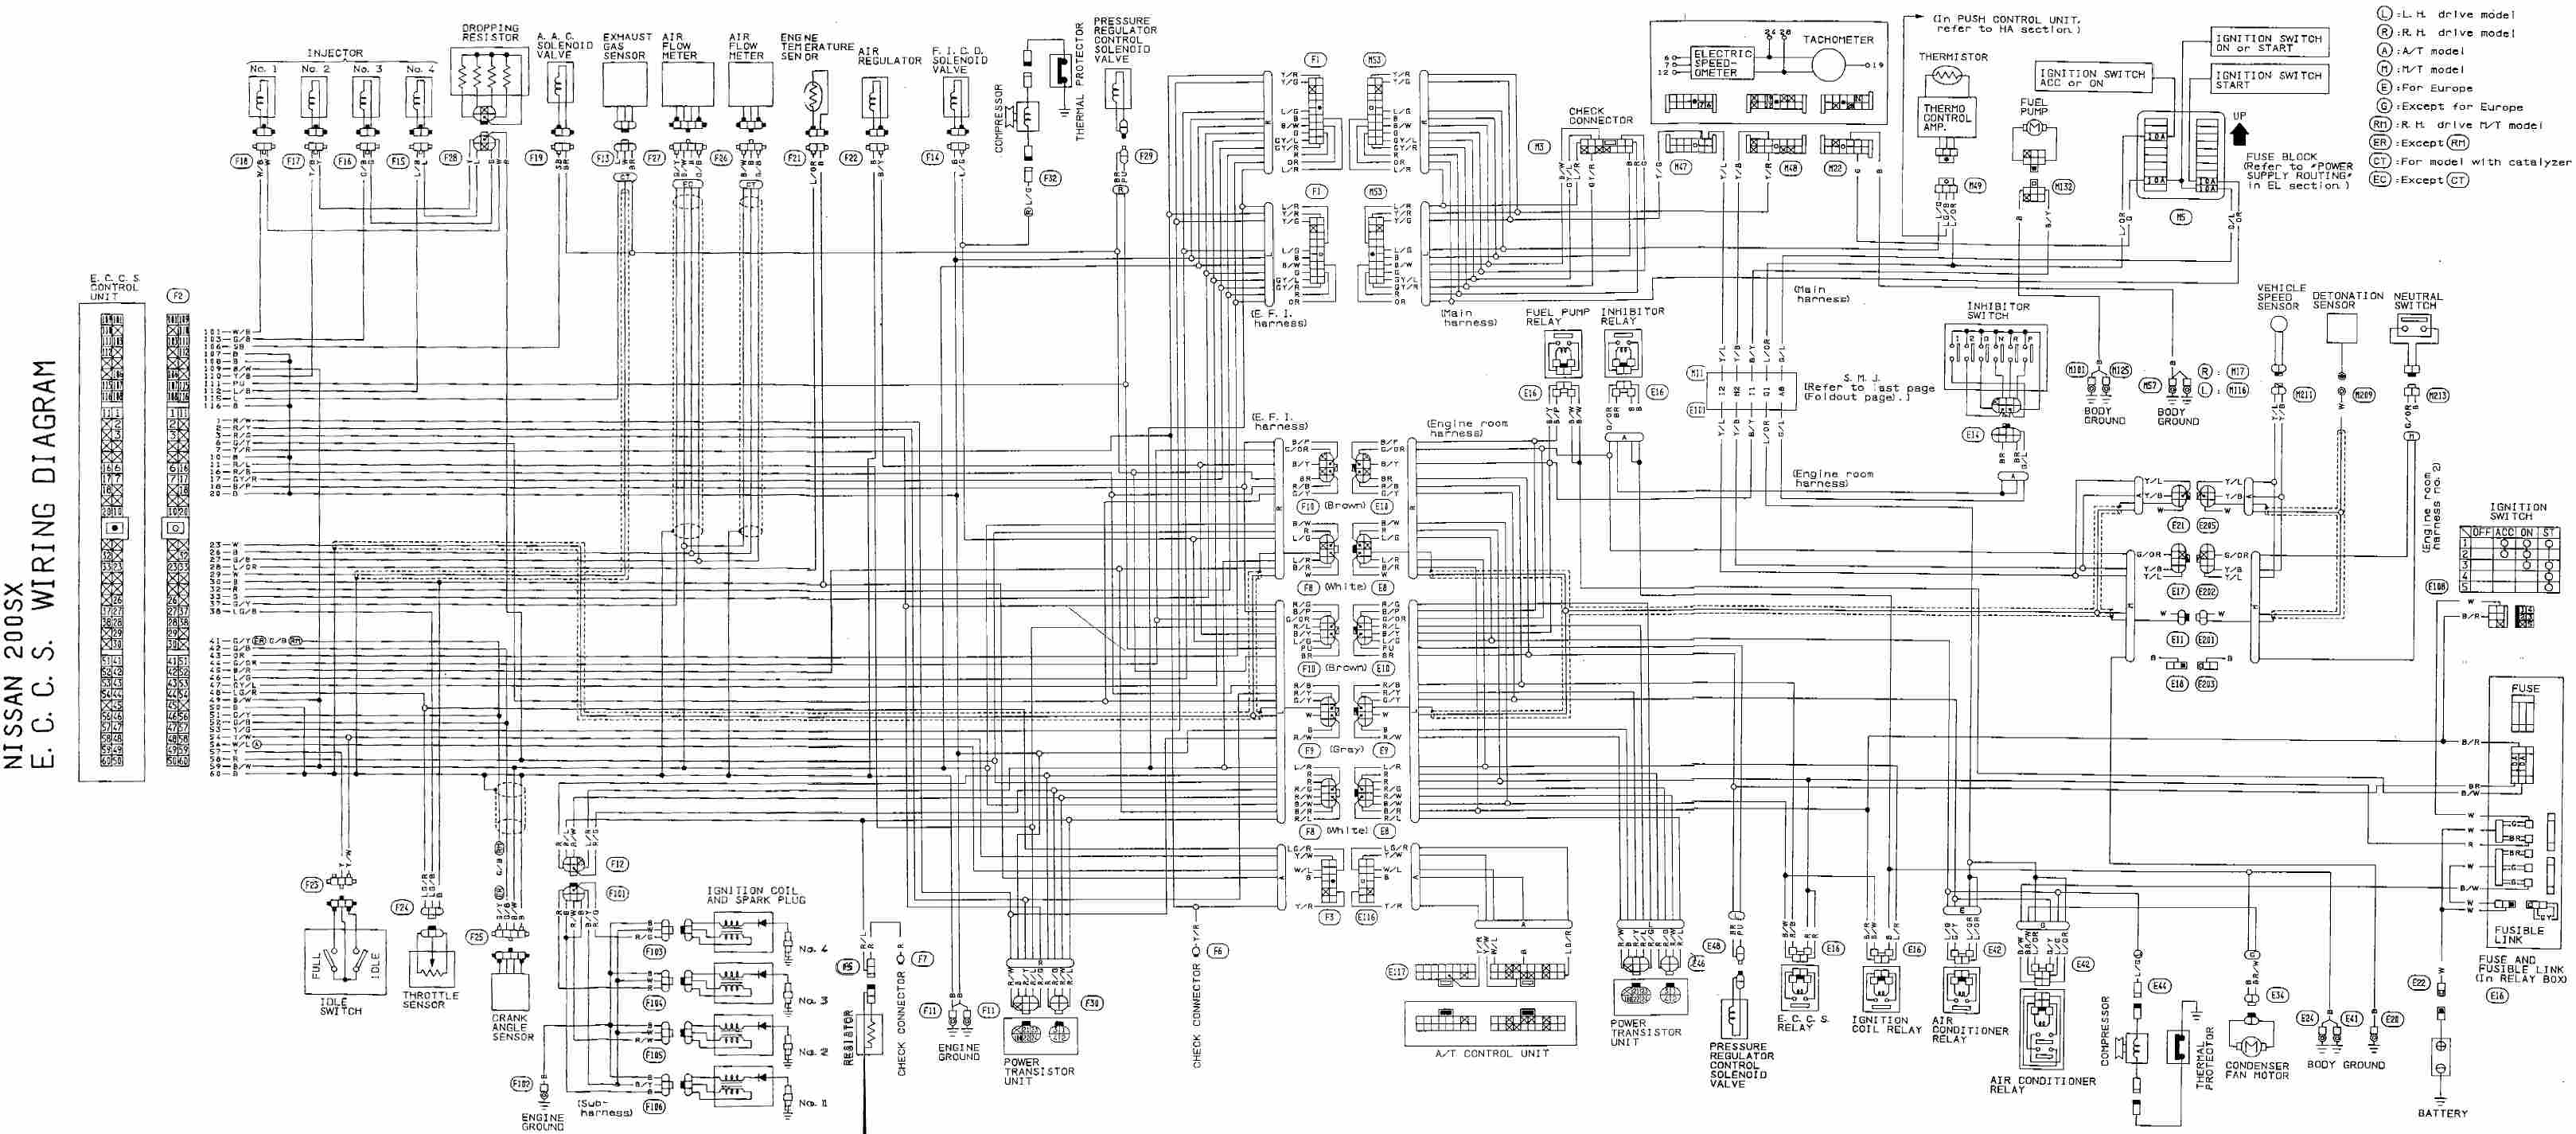 complete eccs wiring diagram of nissan 200x?t\=1508500919 300zx wiring diagram 300zx engine wiring diagram \u2022 wiring diagrams s14 sr20det wiring diagram at soozxer.org